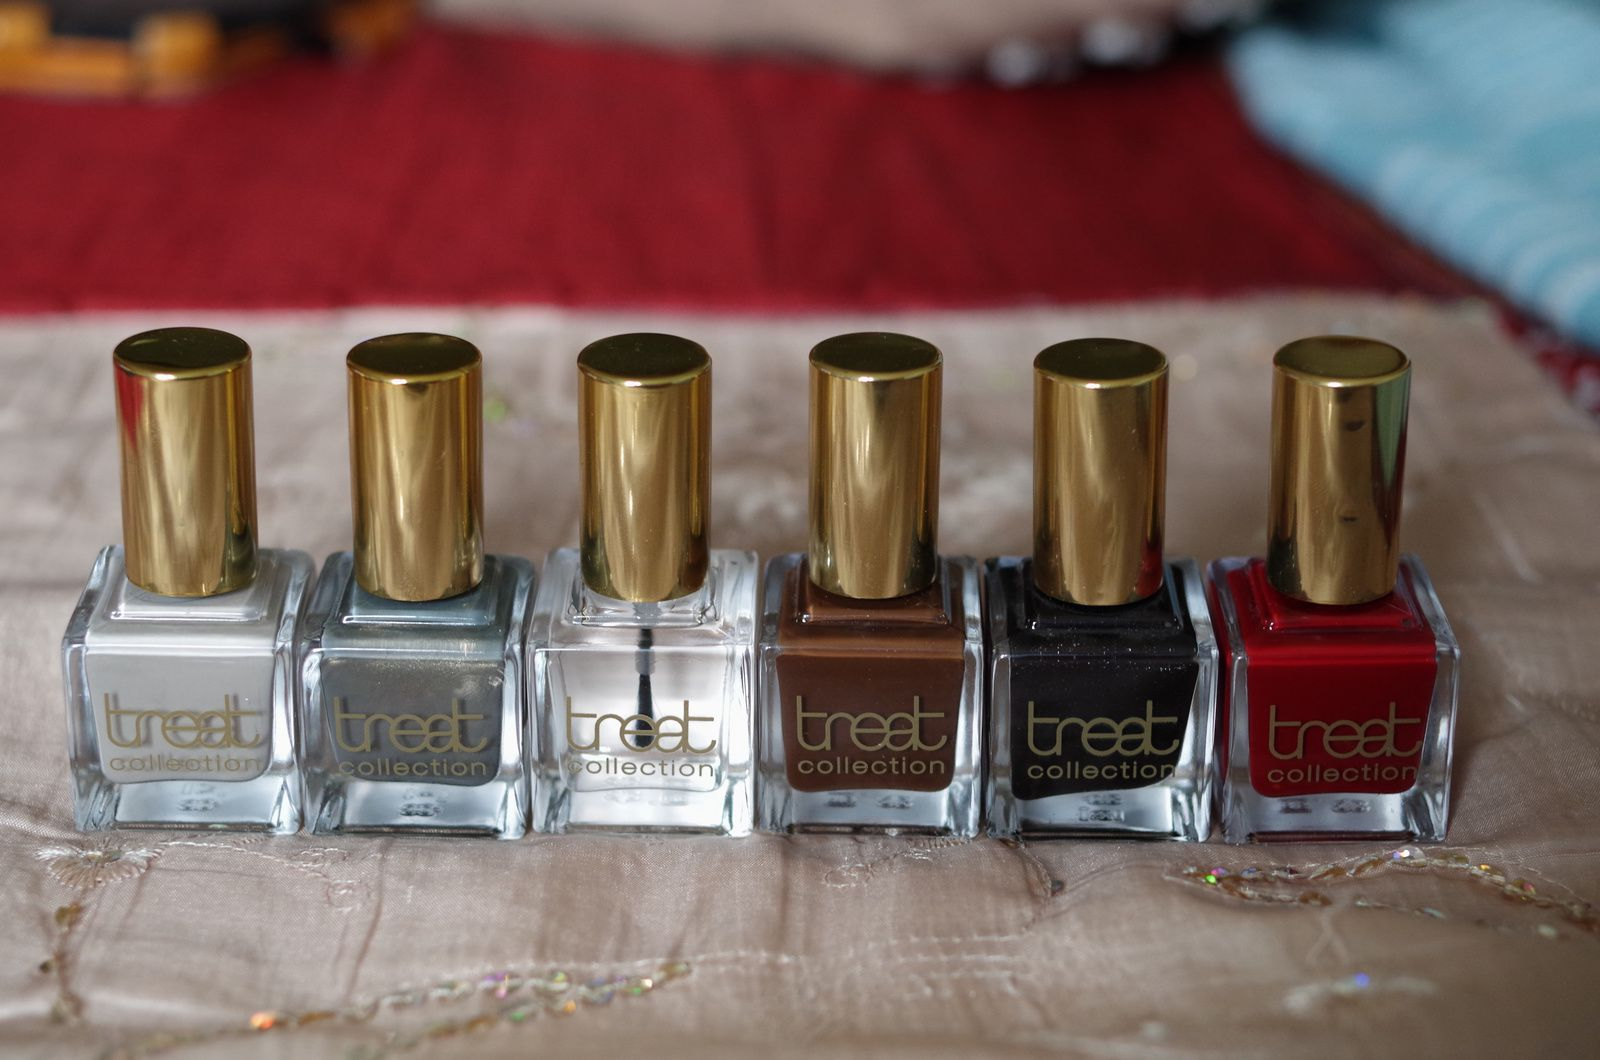 """French Vanilla"" + ""Must Have"" + Top & Base Coat"" + ""Chocolate Lover"" + ""Smokey Nail"" + ""Black Tie"""